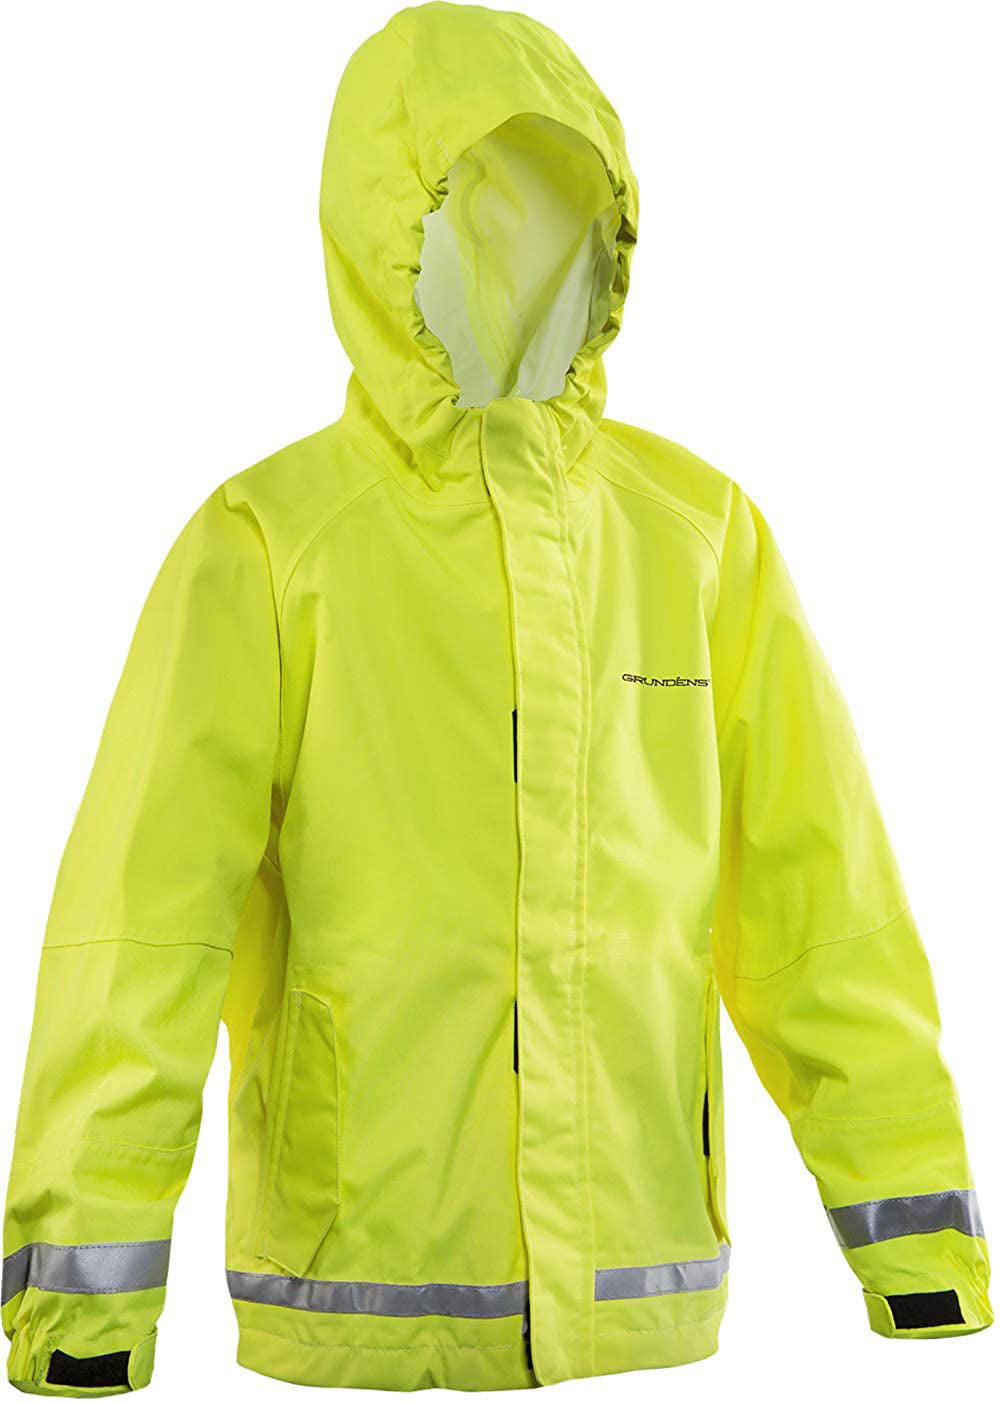 Kids Weather Watch Jacket in Hi Vis Yellow color from the front view